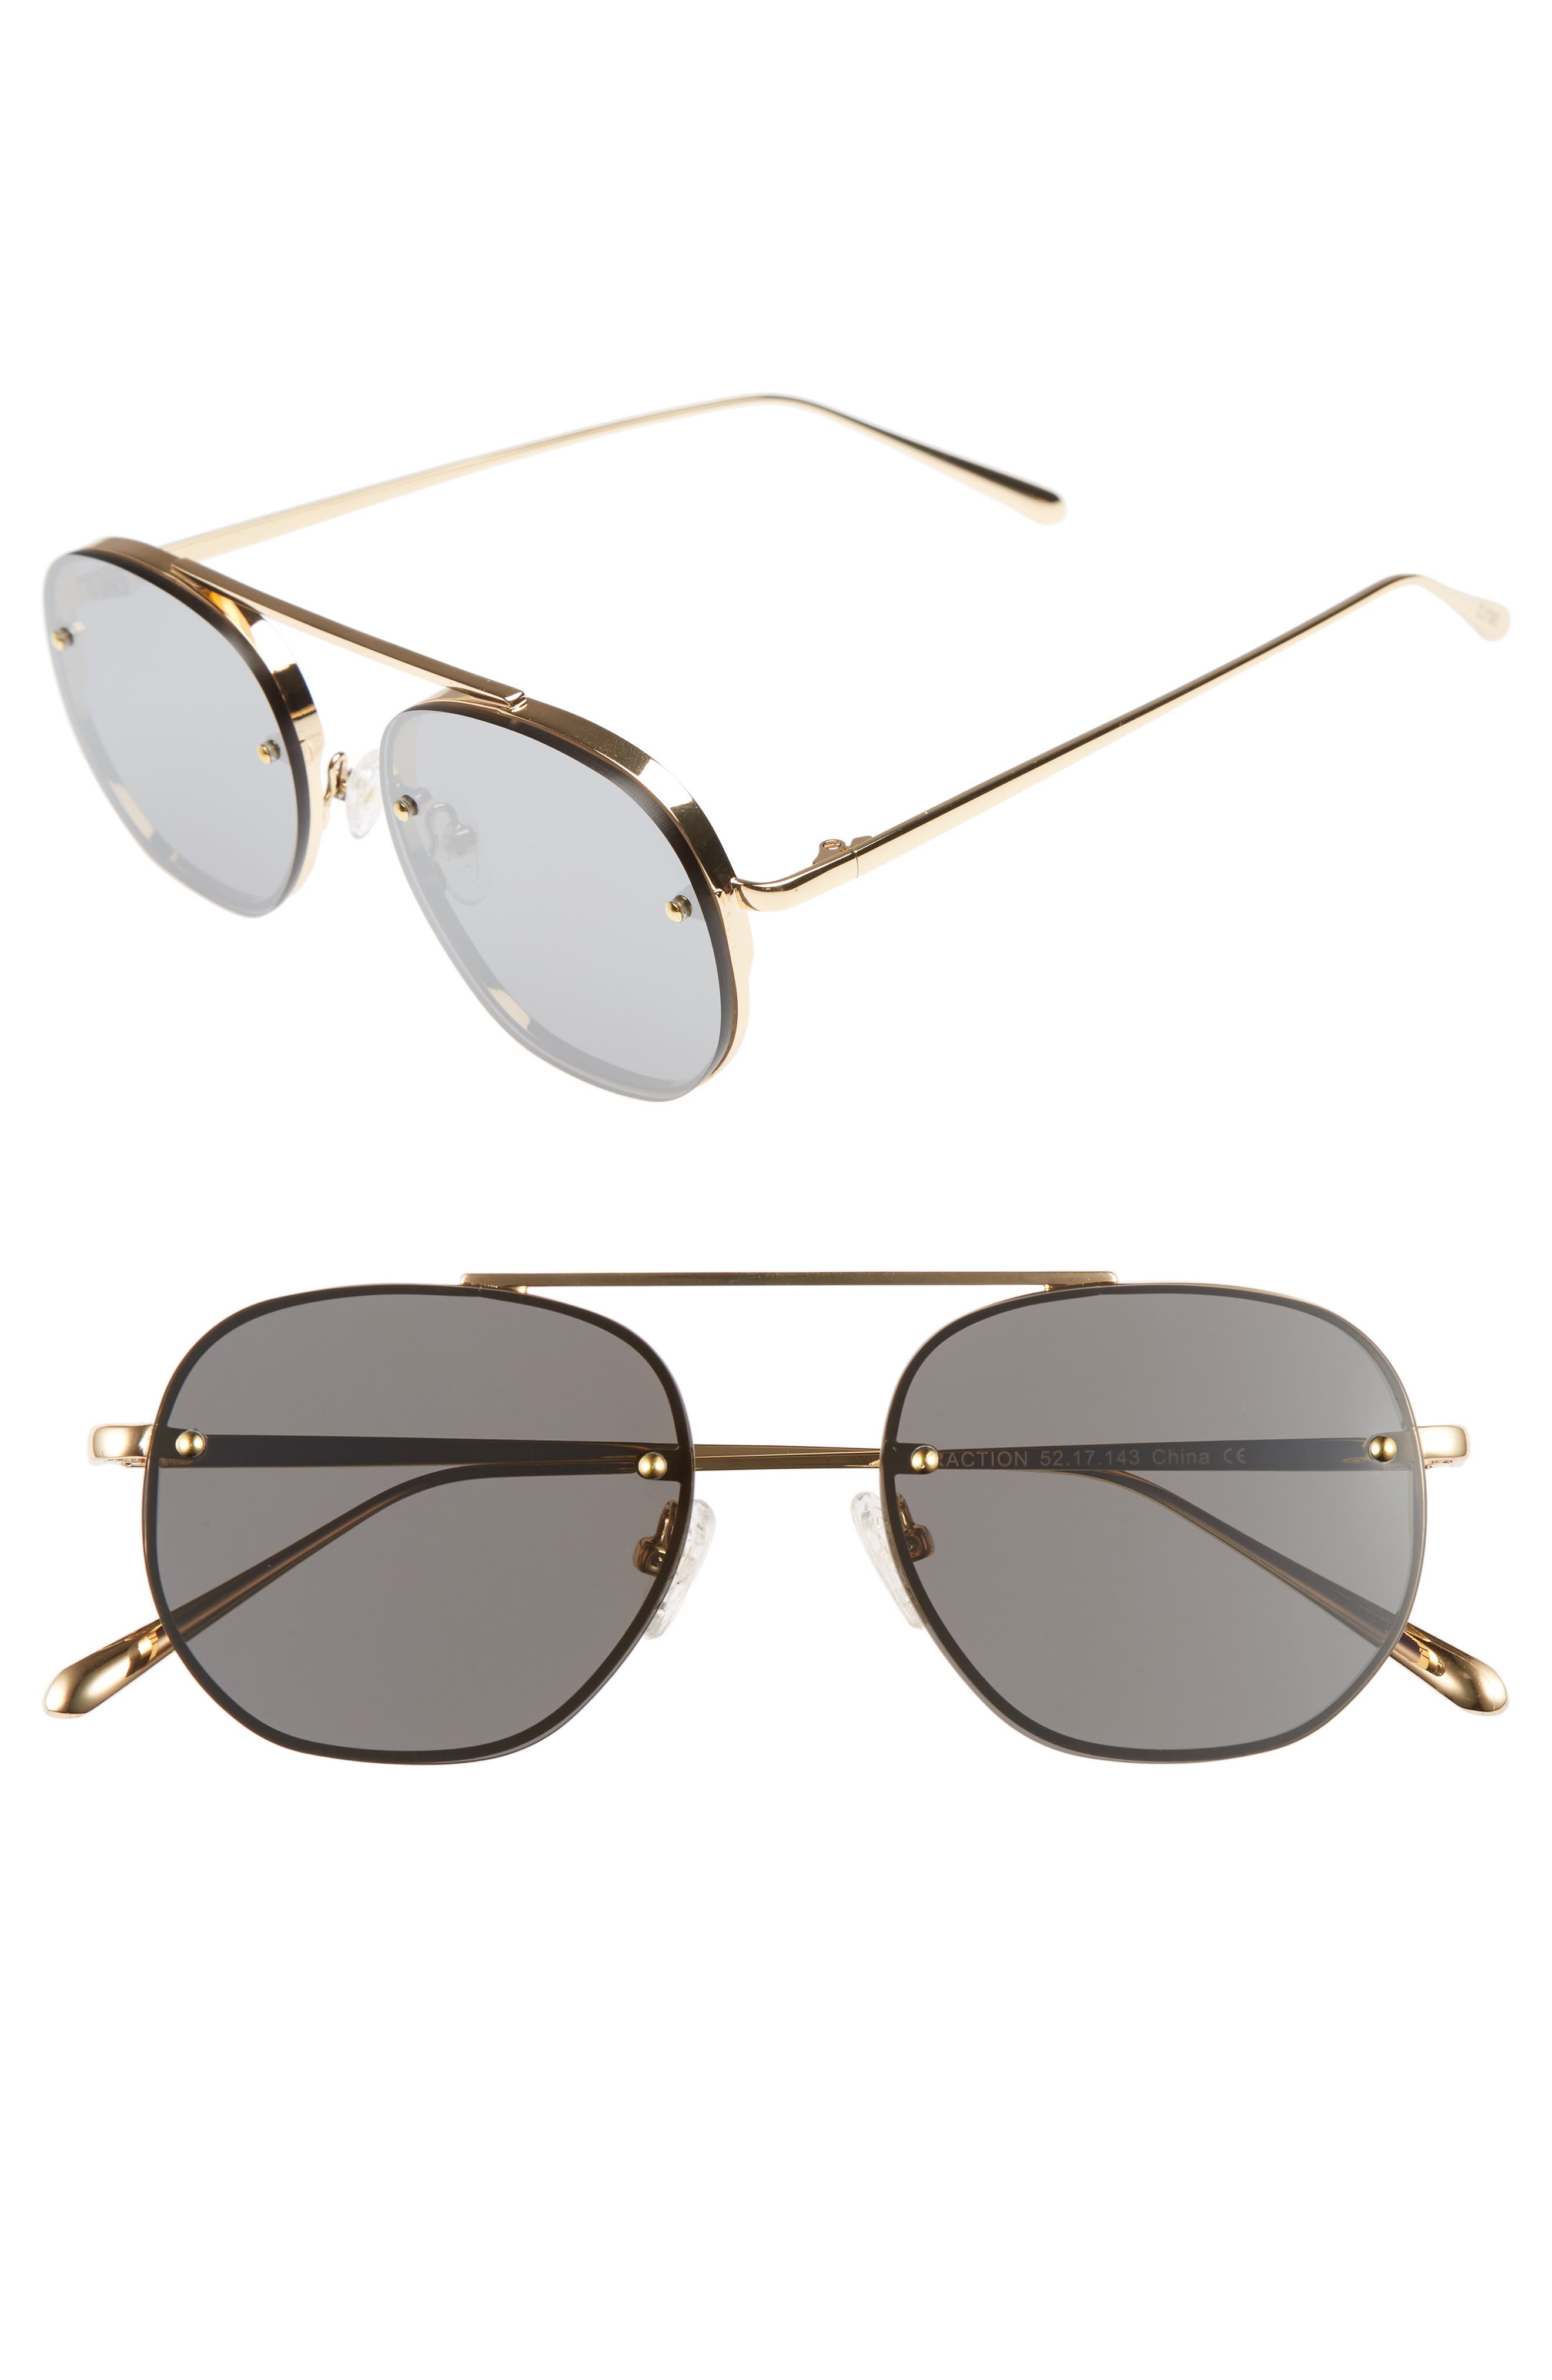 Main Image - Bonnie Clyde Traction 52mm Aviator Sunglasses